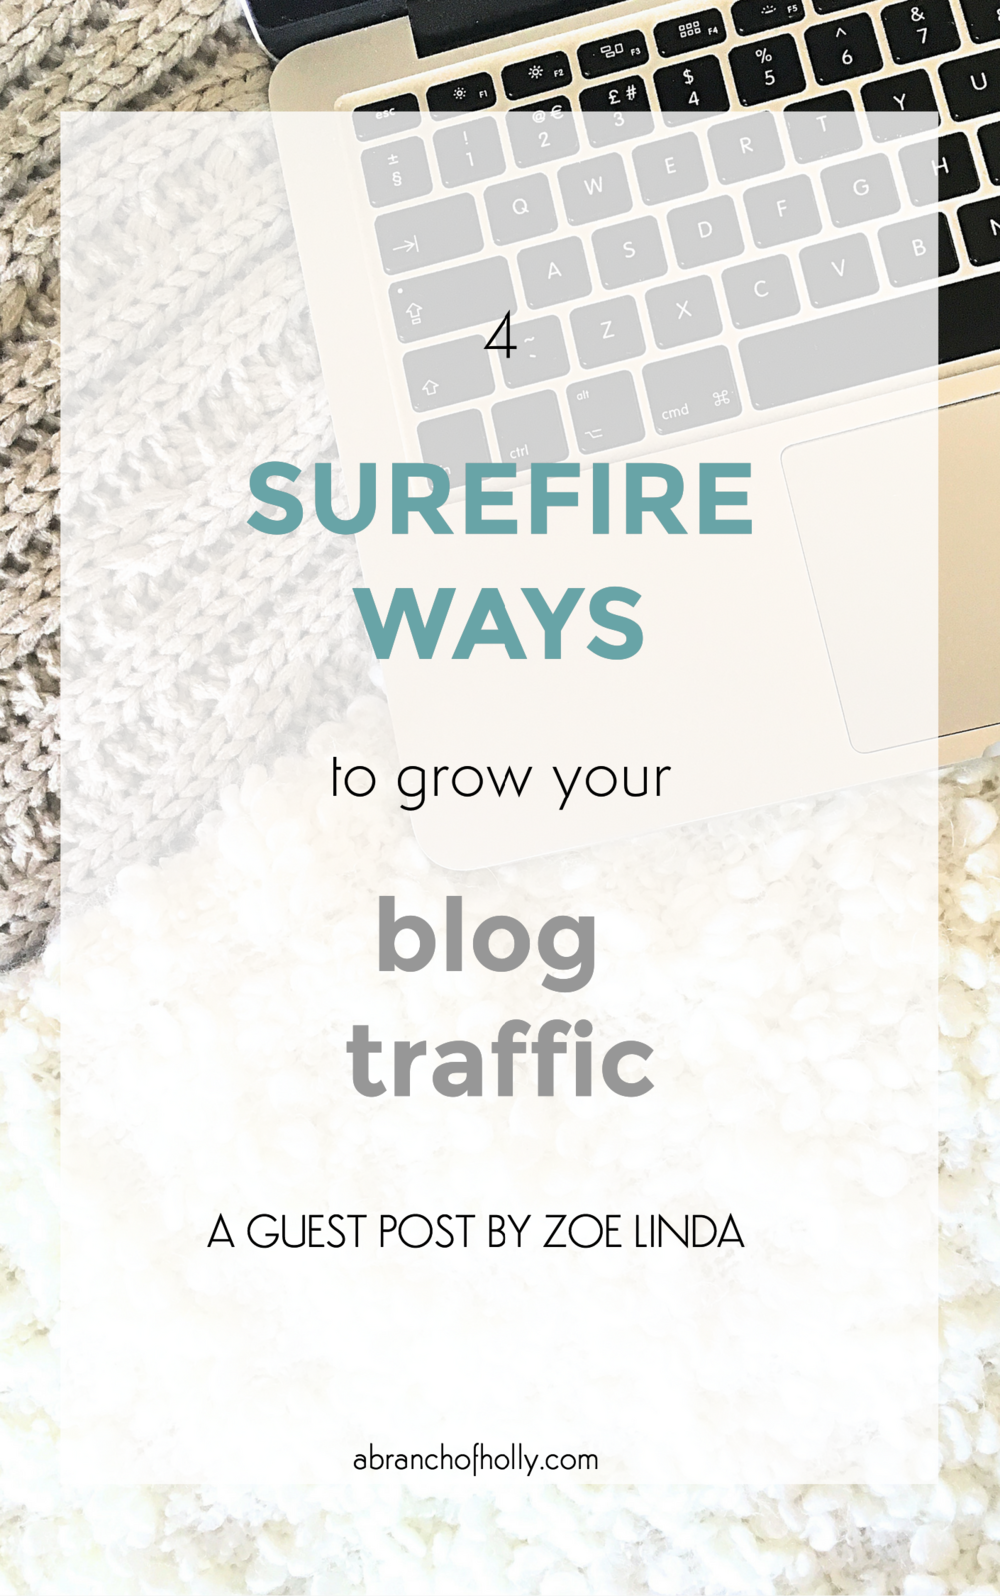 4 surefire ways to grow your blog traffic